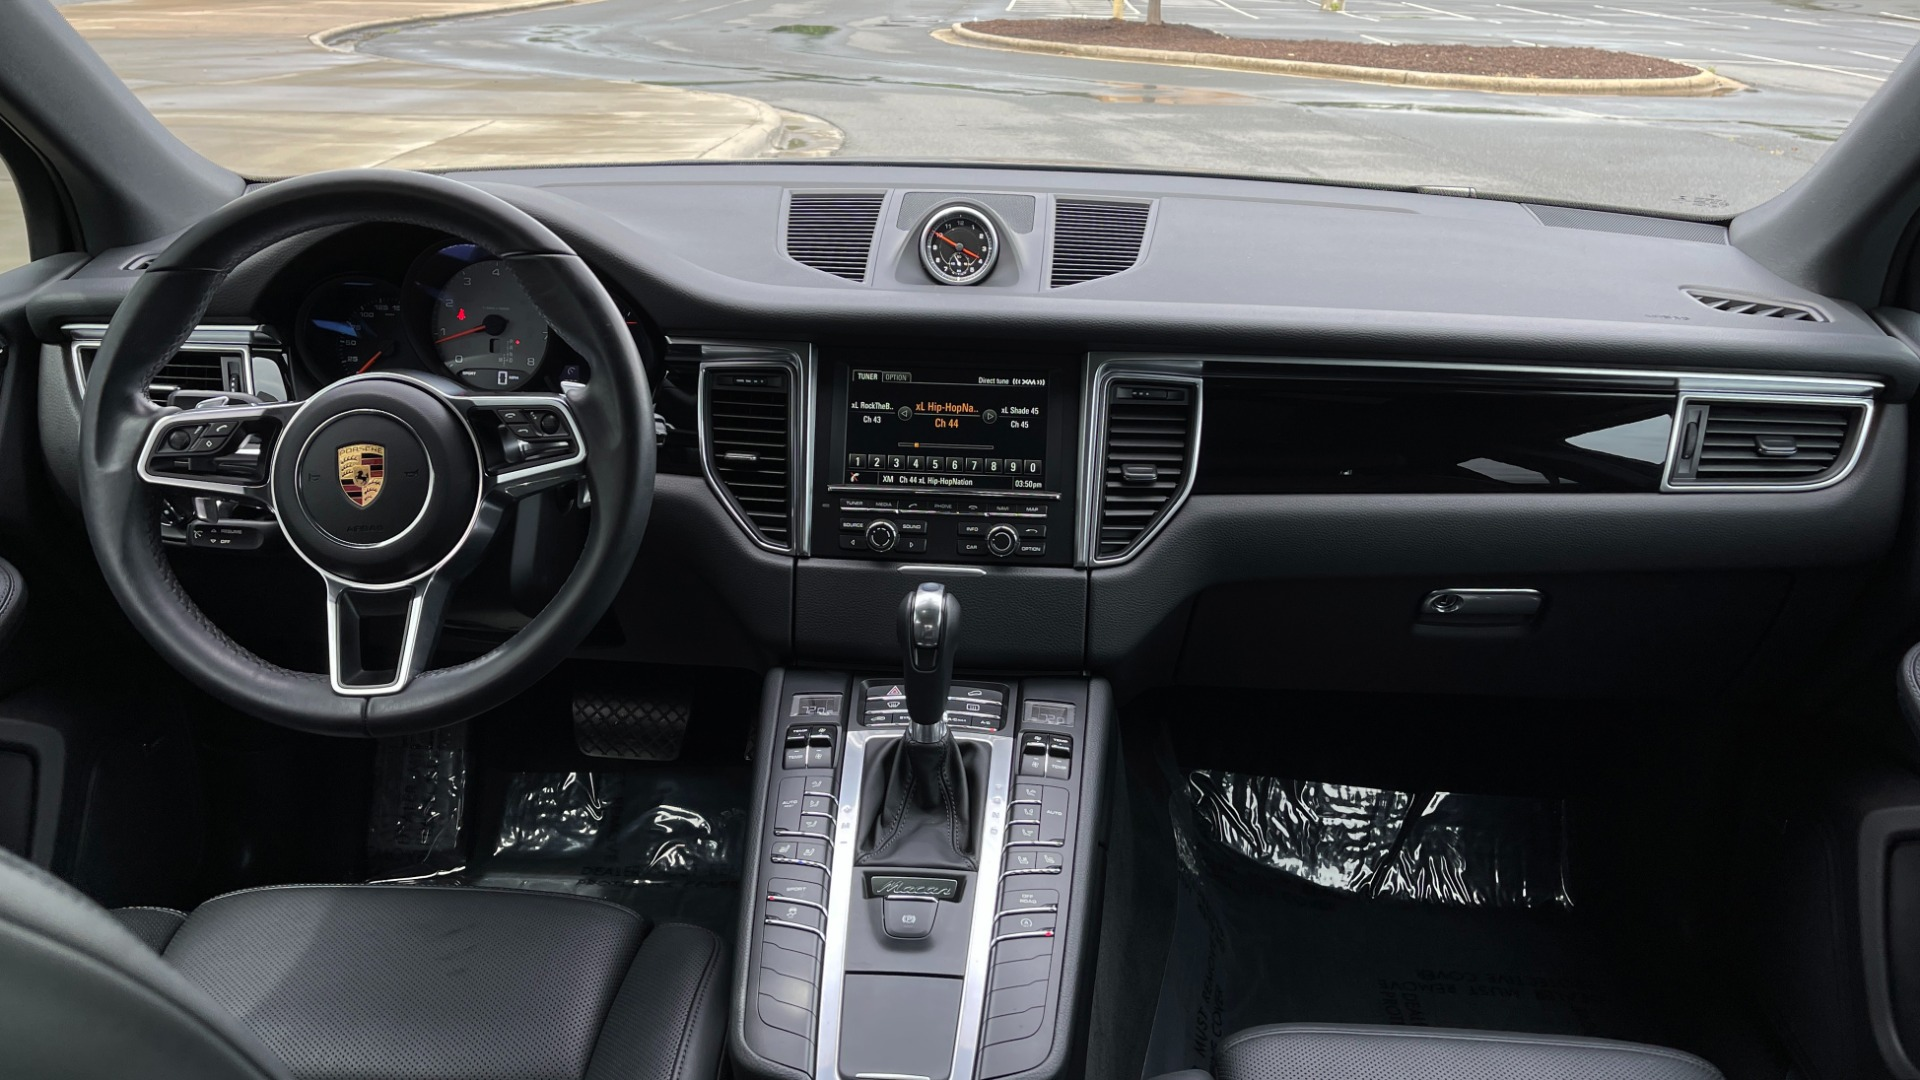 Used 2016 Porsche MACAN S PREMIUM PLUS / AWD / NAV / BOSE / SUNROOF / LCA / PARK ASST / INFOTAINMEN for sale $45,256 at Formula Imports in Charlotte NC 28227 34